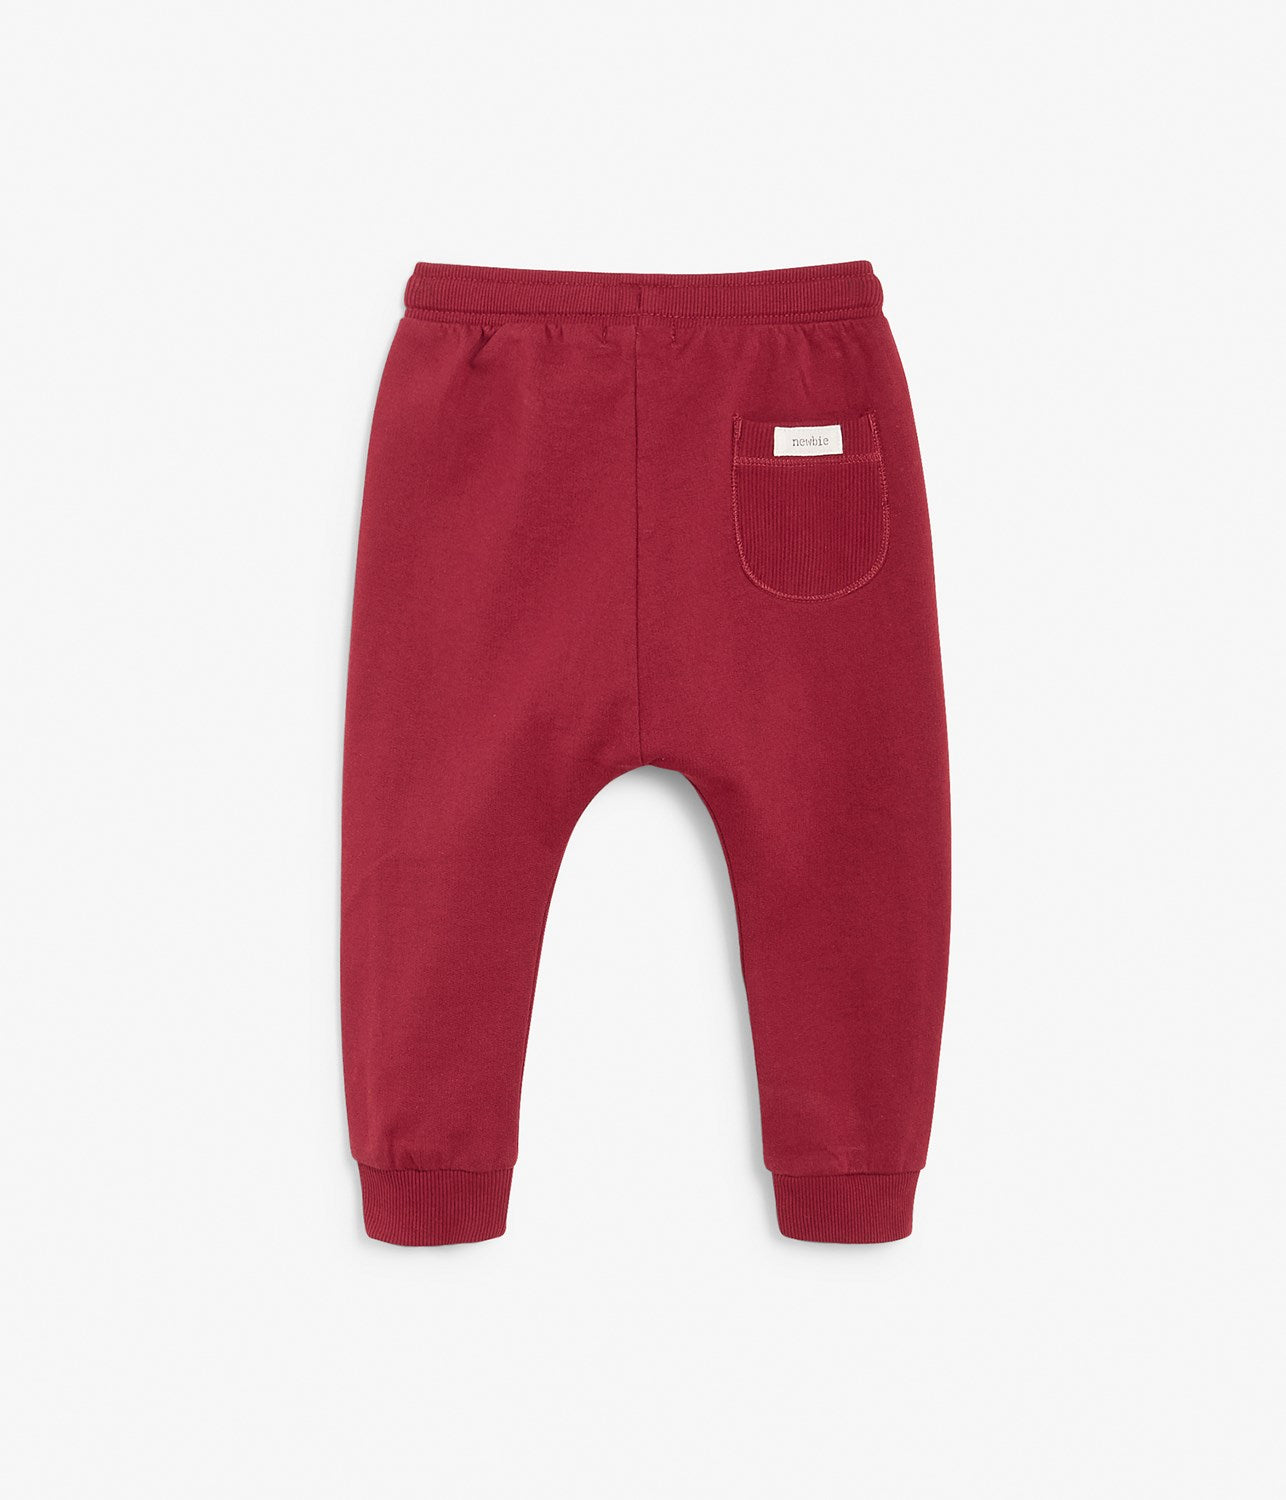 Baby red drawstring jogging trousers